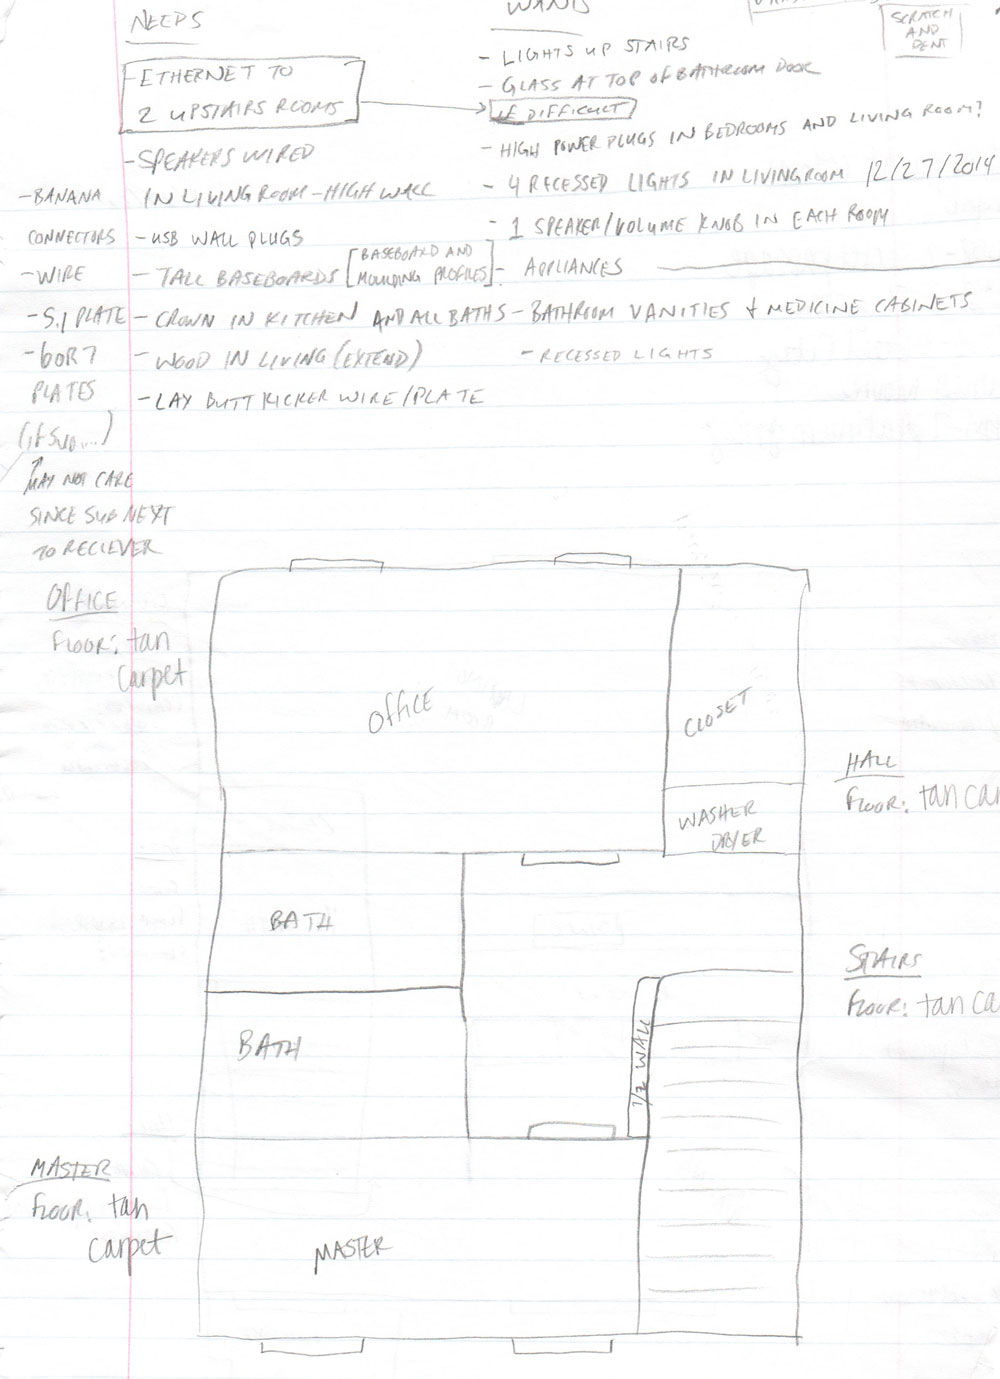 Second Floor and List of Needs and Wants